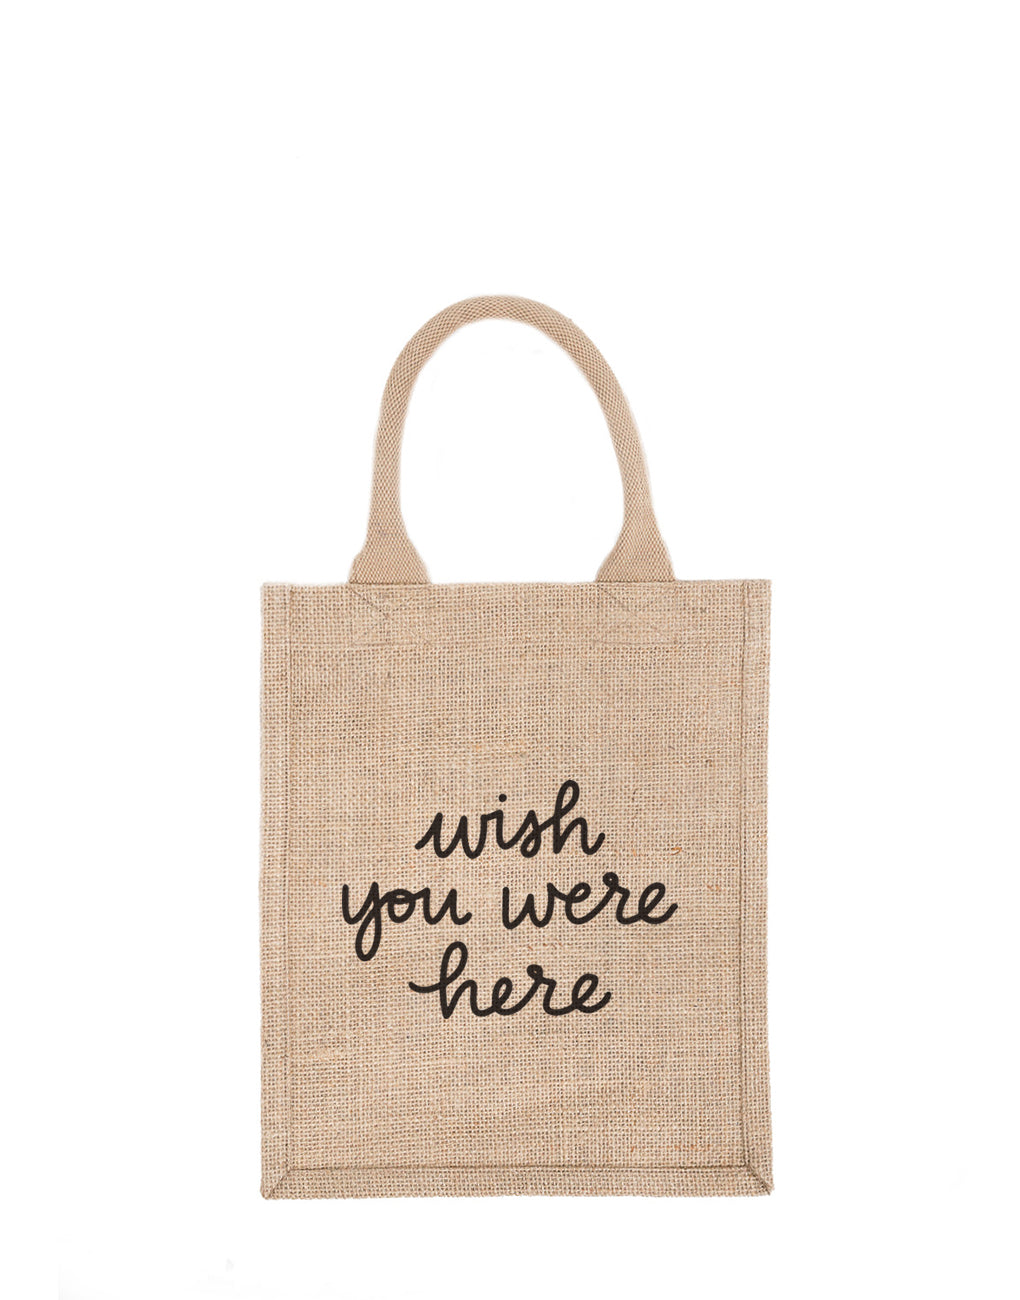 Medium Wish You Were Here Reusable Gift Tote In Black Font | The Little Market